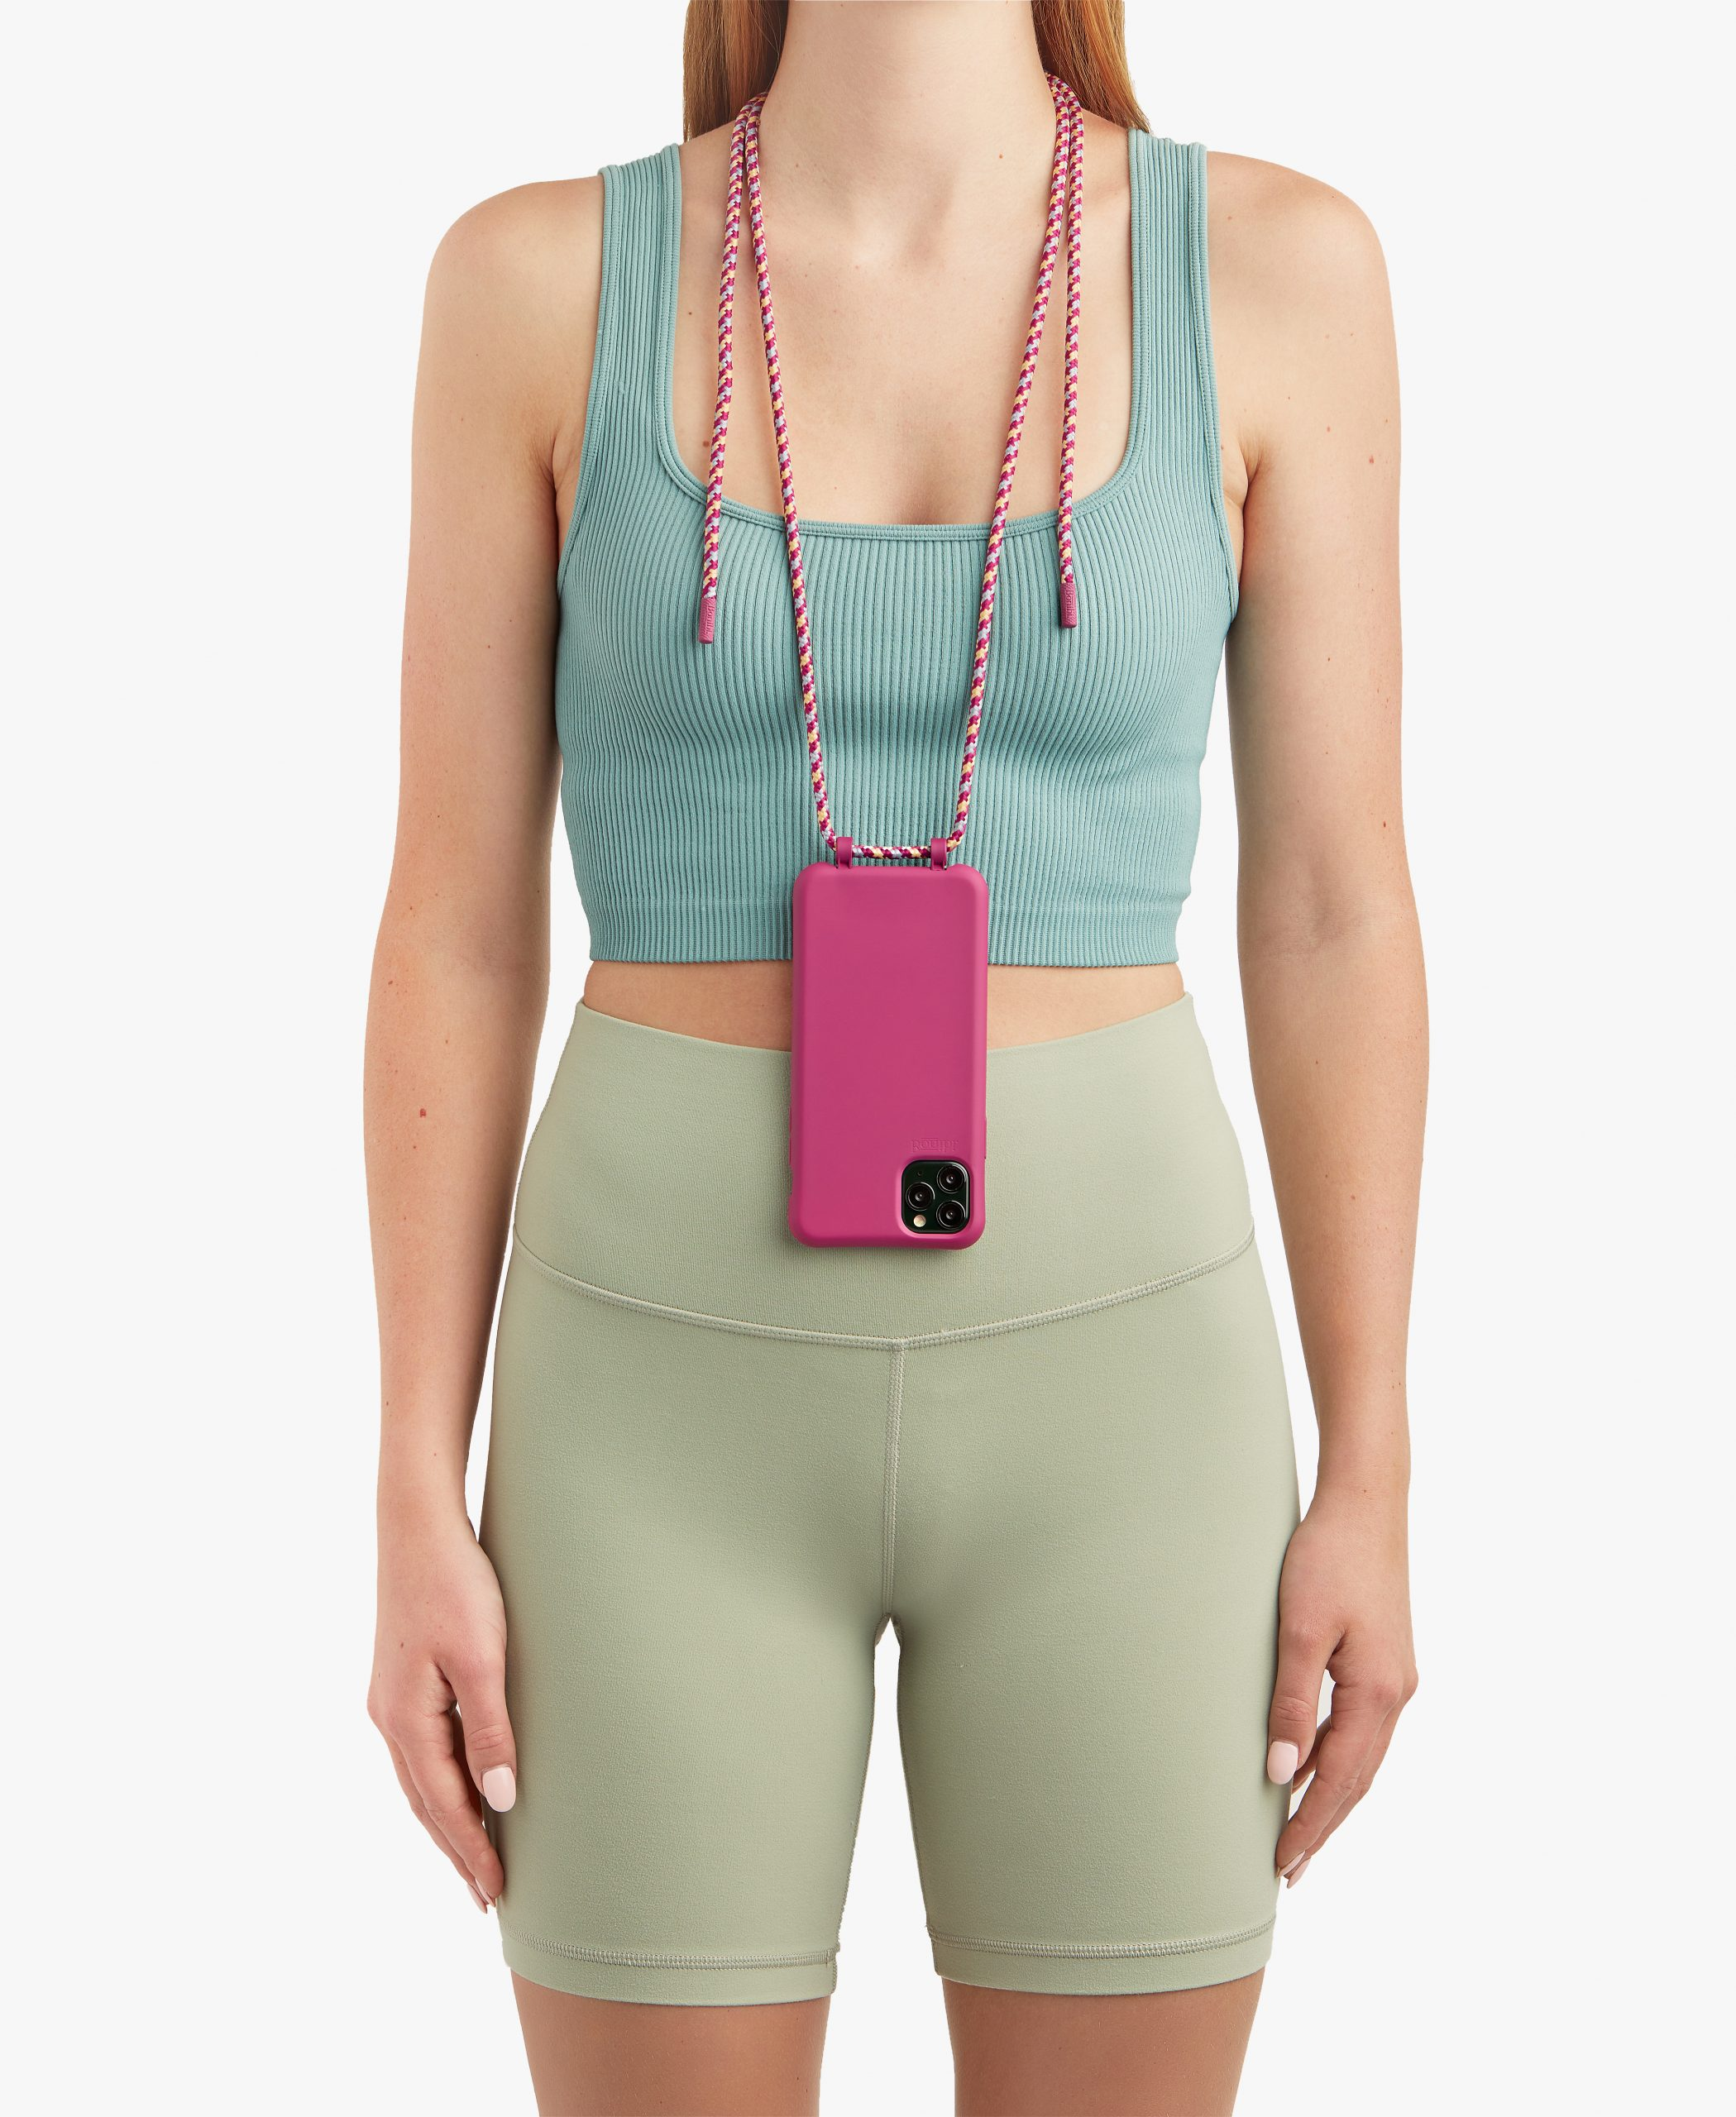 Bonibi-Crossbody-Phone-Case-iPhone-Raspberry-Case-Palm-Desert-Cord-Raspberry-Hardware-Necklace-Lanyard-Lifestyle-Phone-Case-With-Strap-Neck Holder-Card Holder-Tether-Carrier-Functional